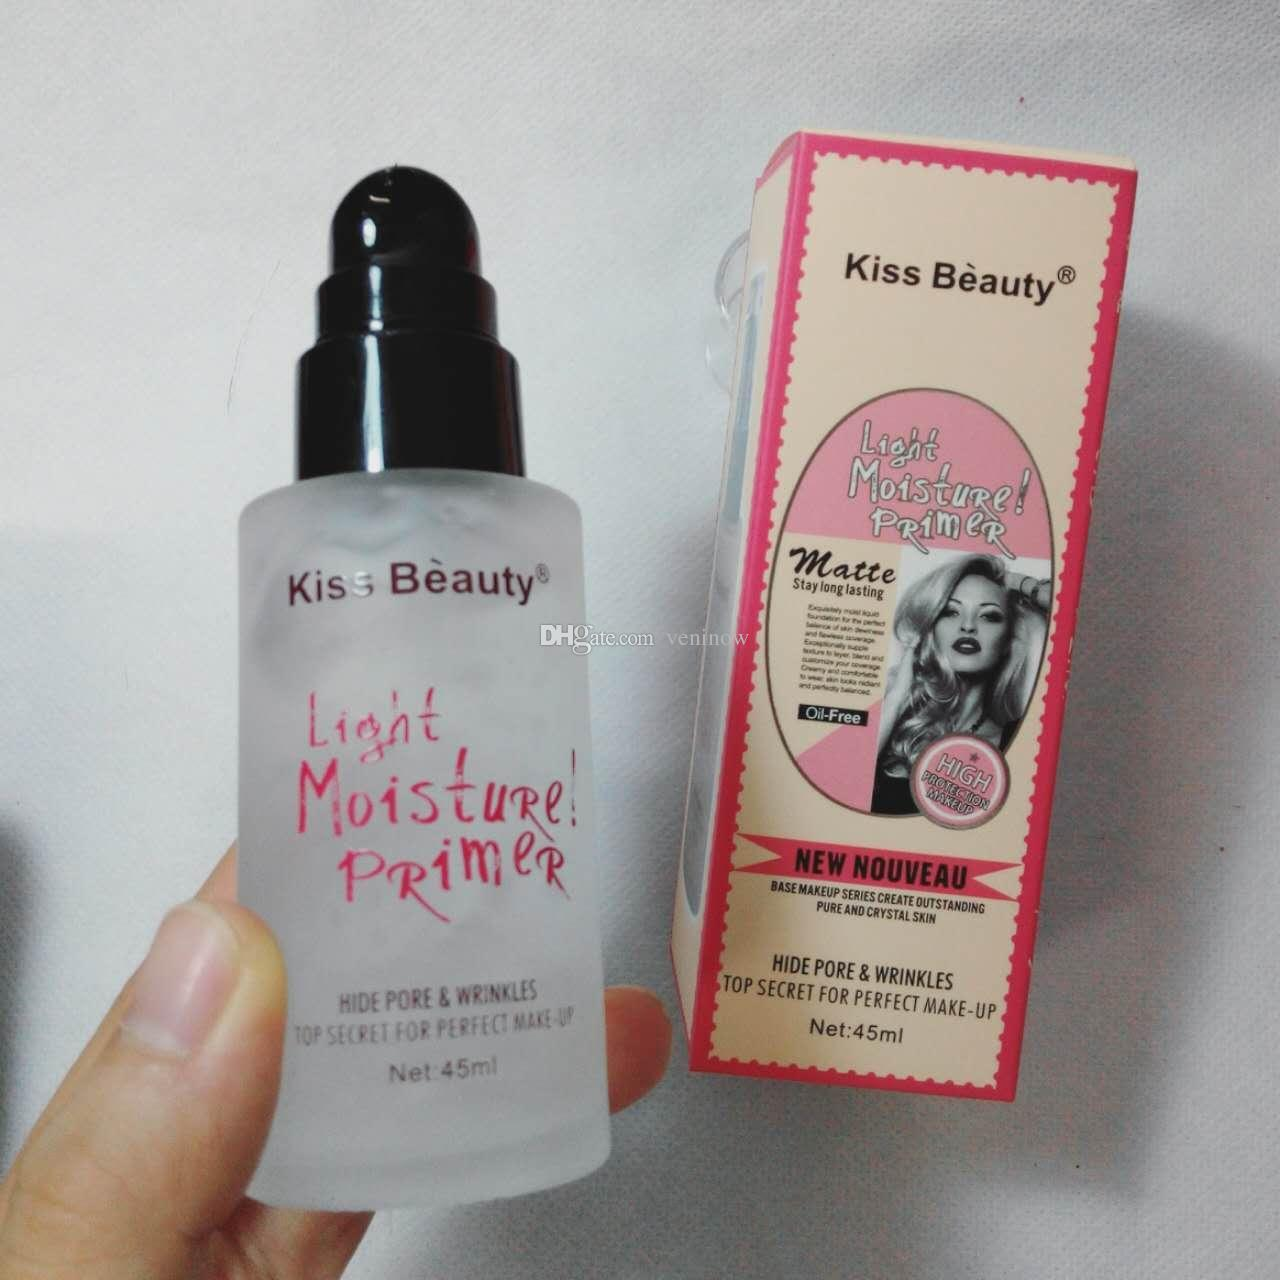 Kiss And Makeup Store: Kiss Beauty Light Moisture Primer